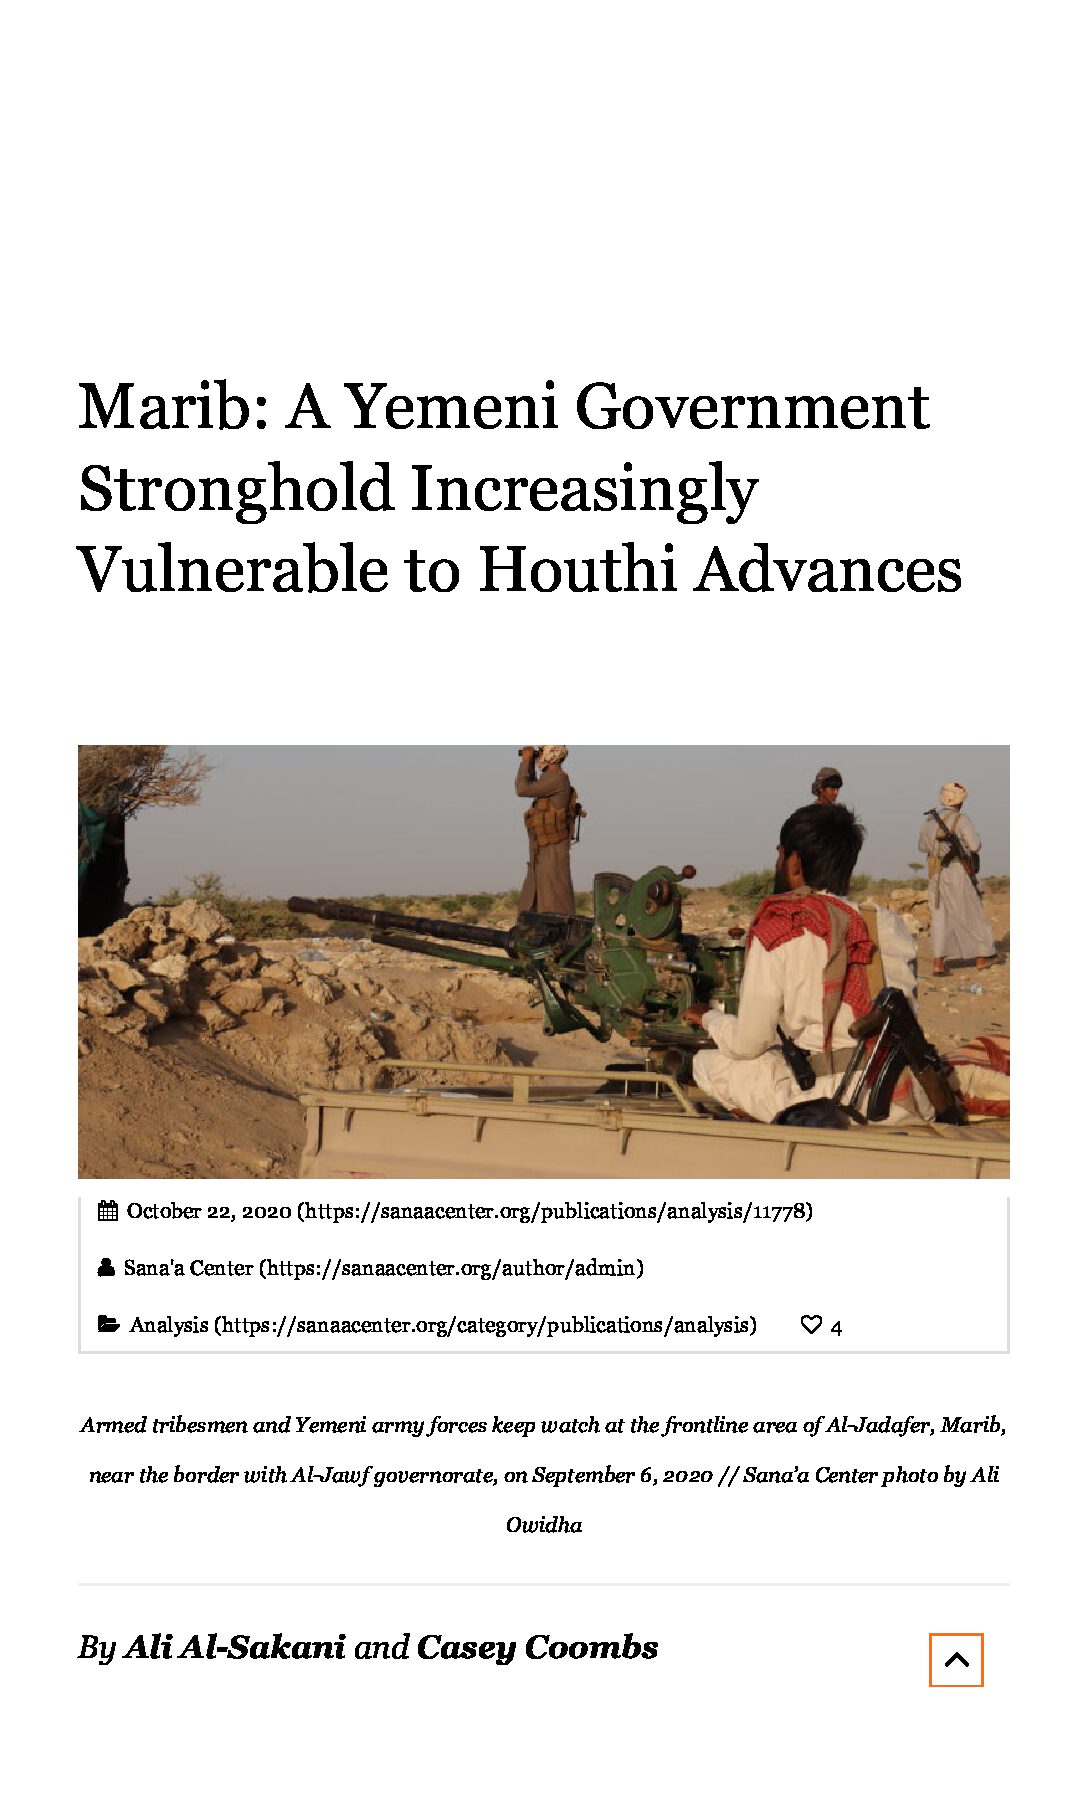 Marib: A Yemeni Government Stronghold Increasingly Vulnerable to Houthi Advances